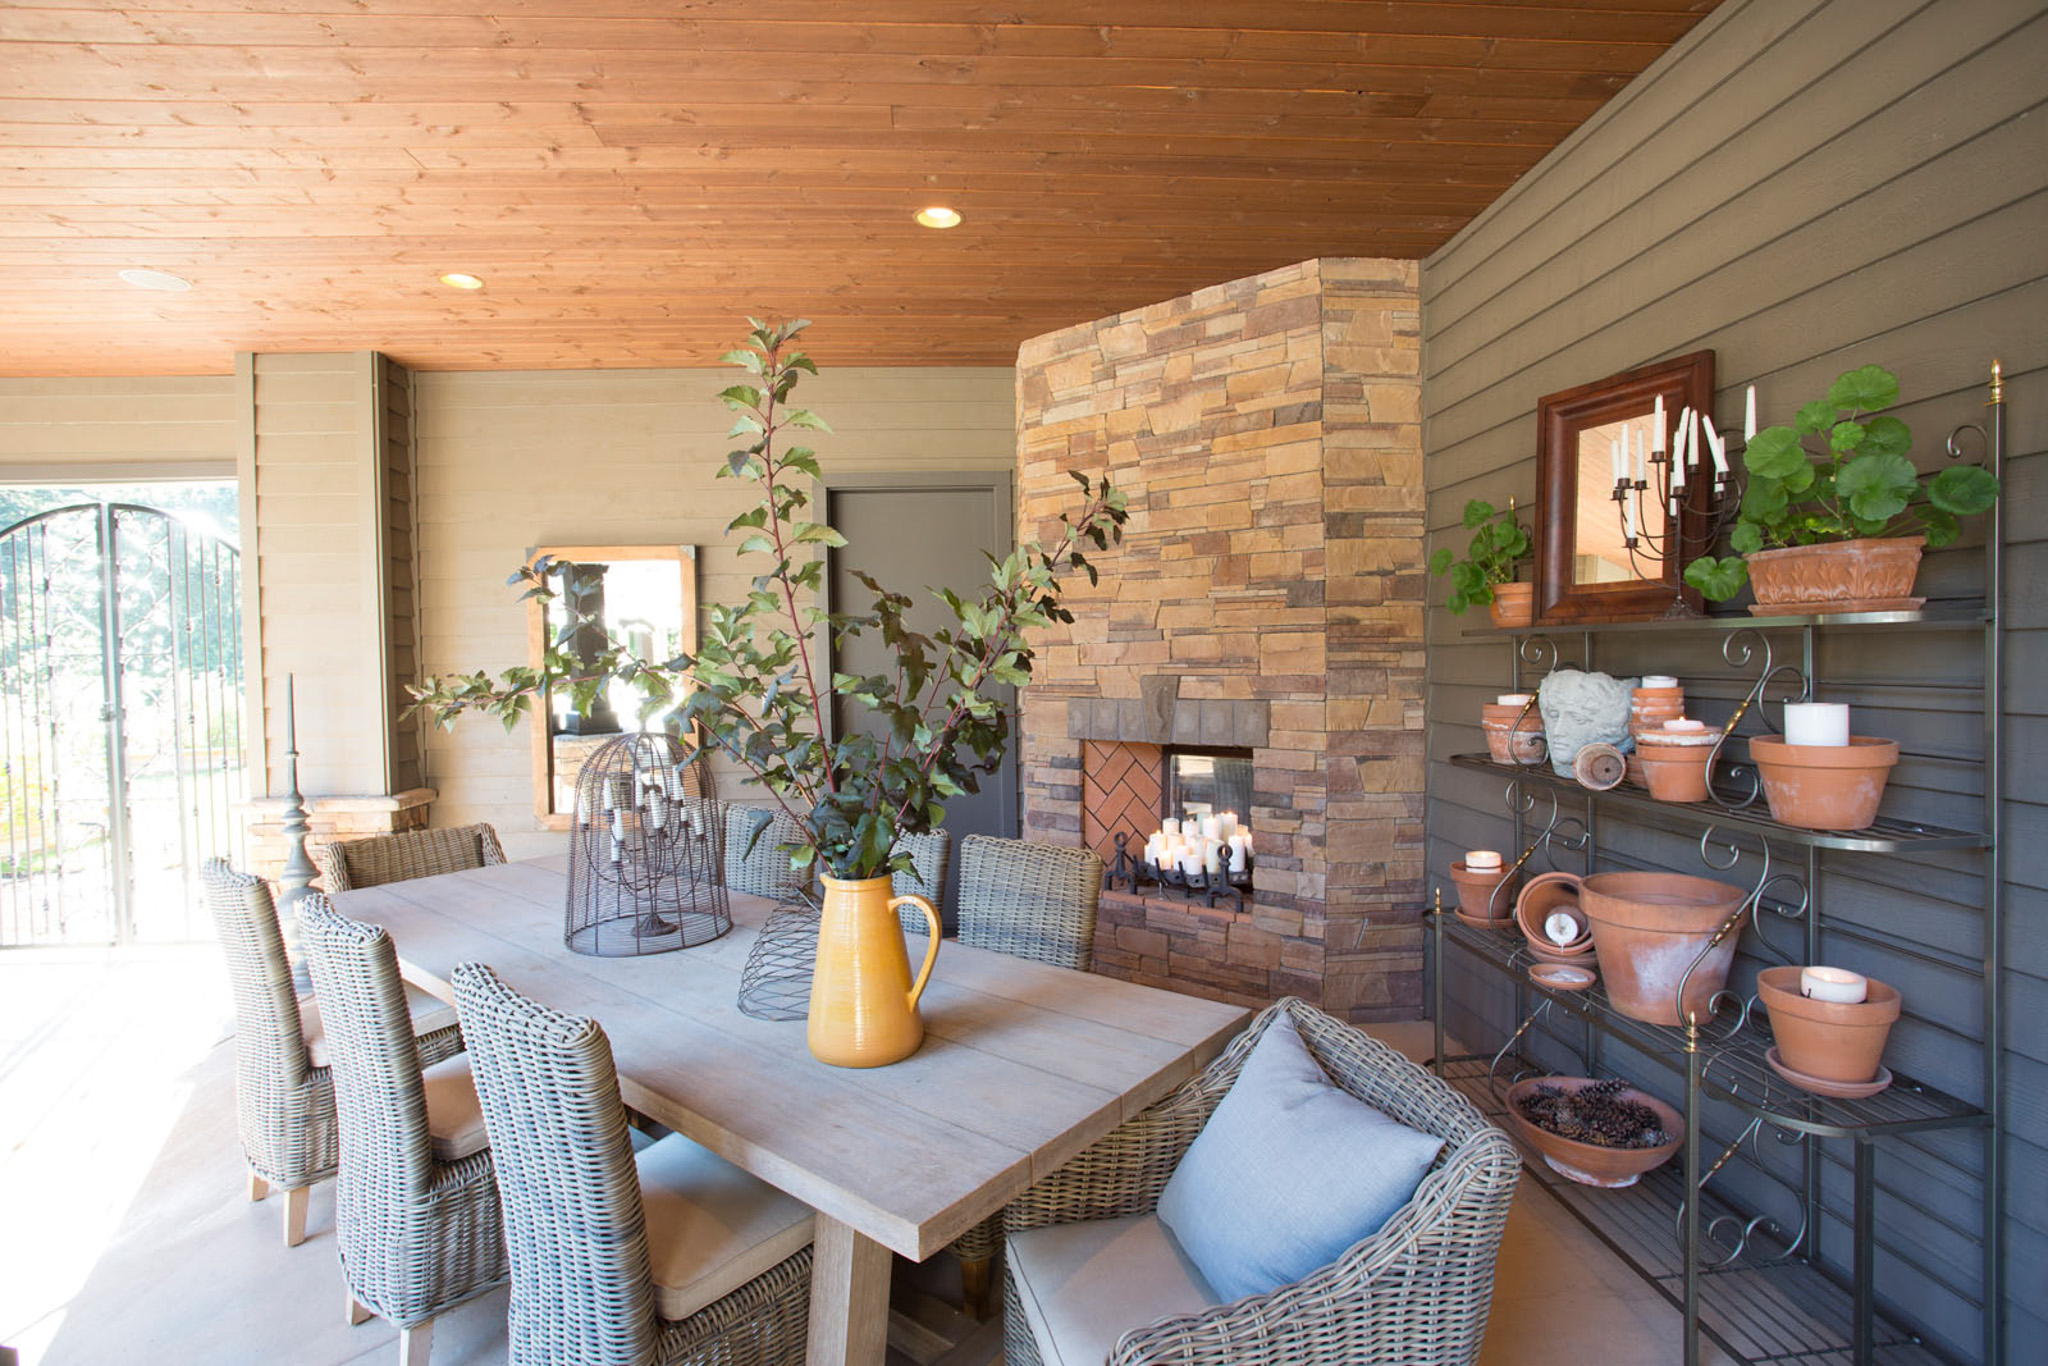 Lord Interior Design - Pete's Mountain Outdoor Kitchen and Patio Project-5.jpg